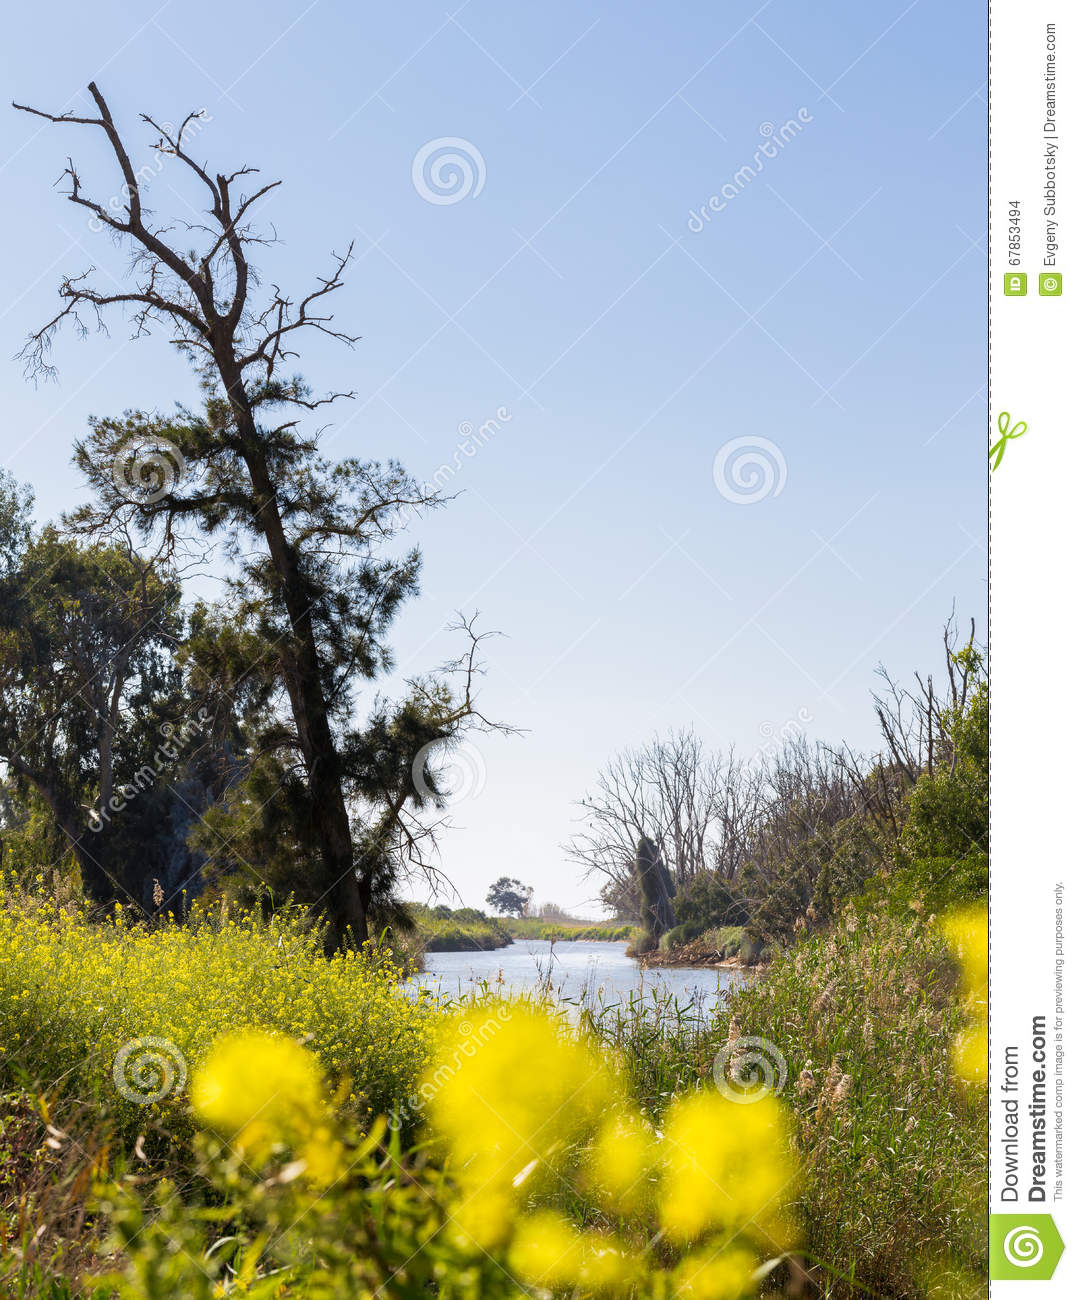 River Bank Trees Bush Blossom Spring Flowers Stock Photo Image Of